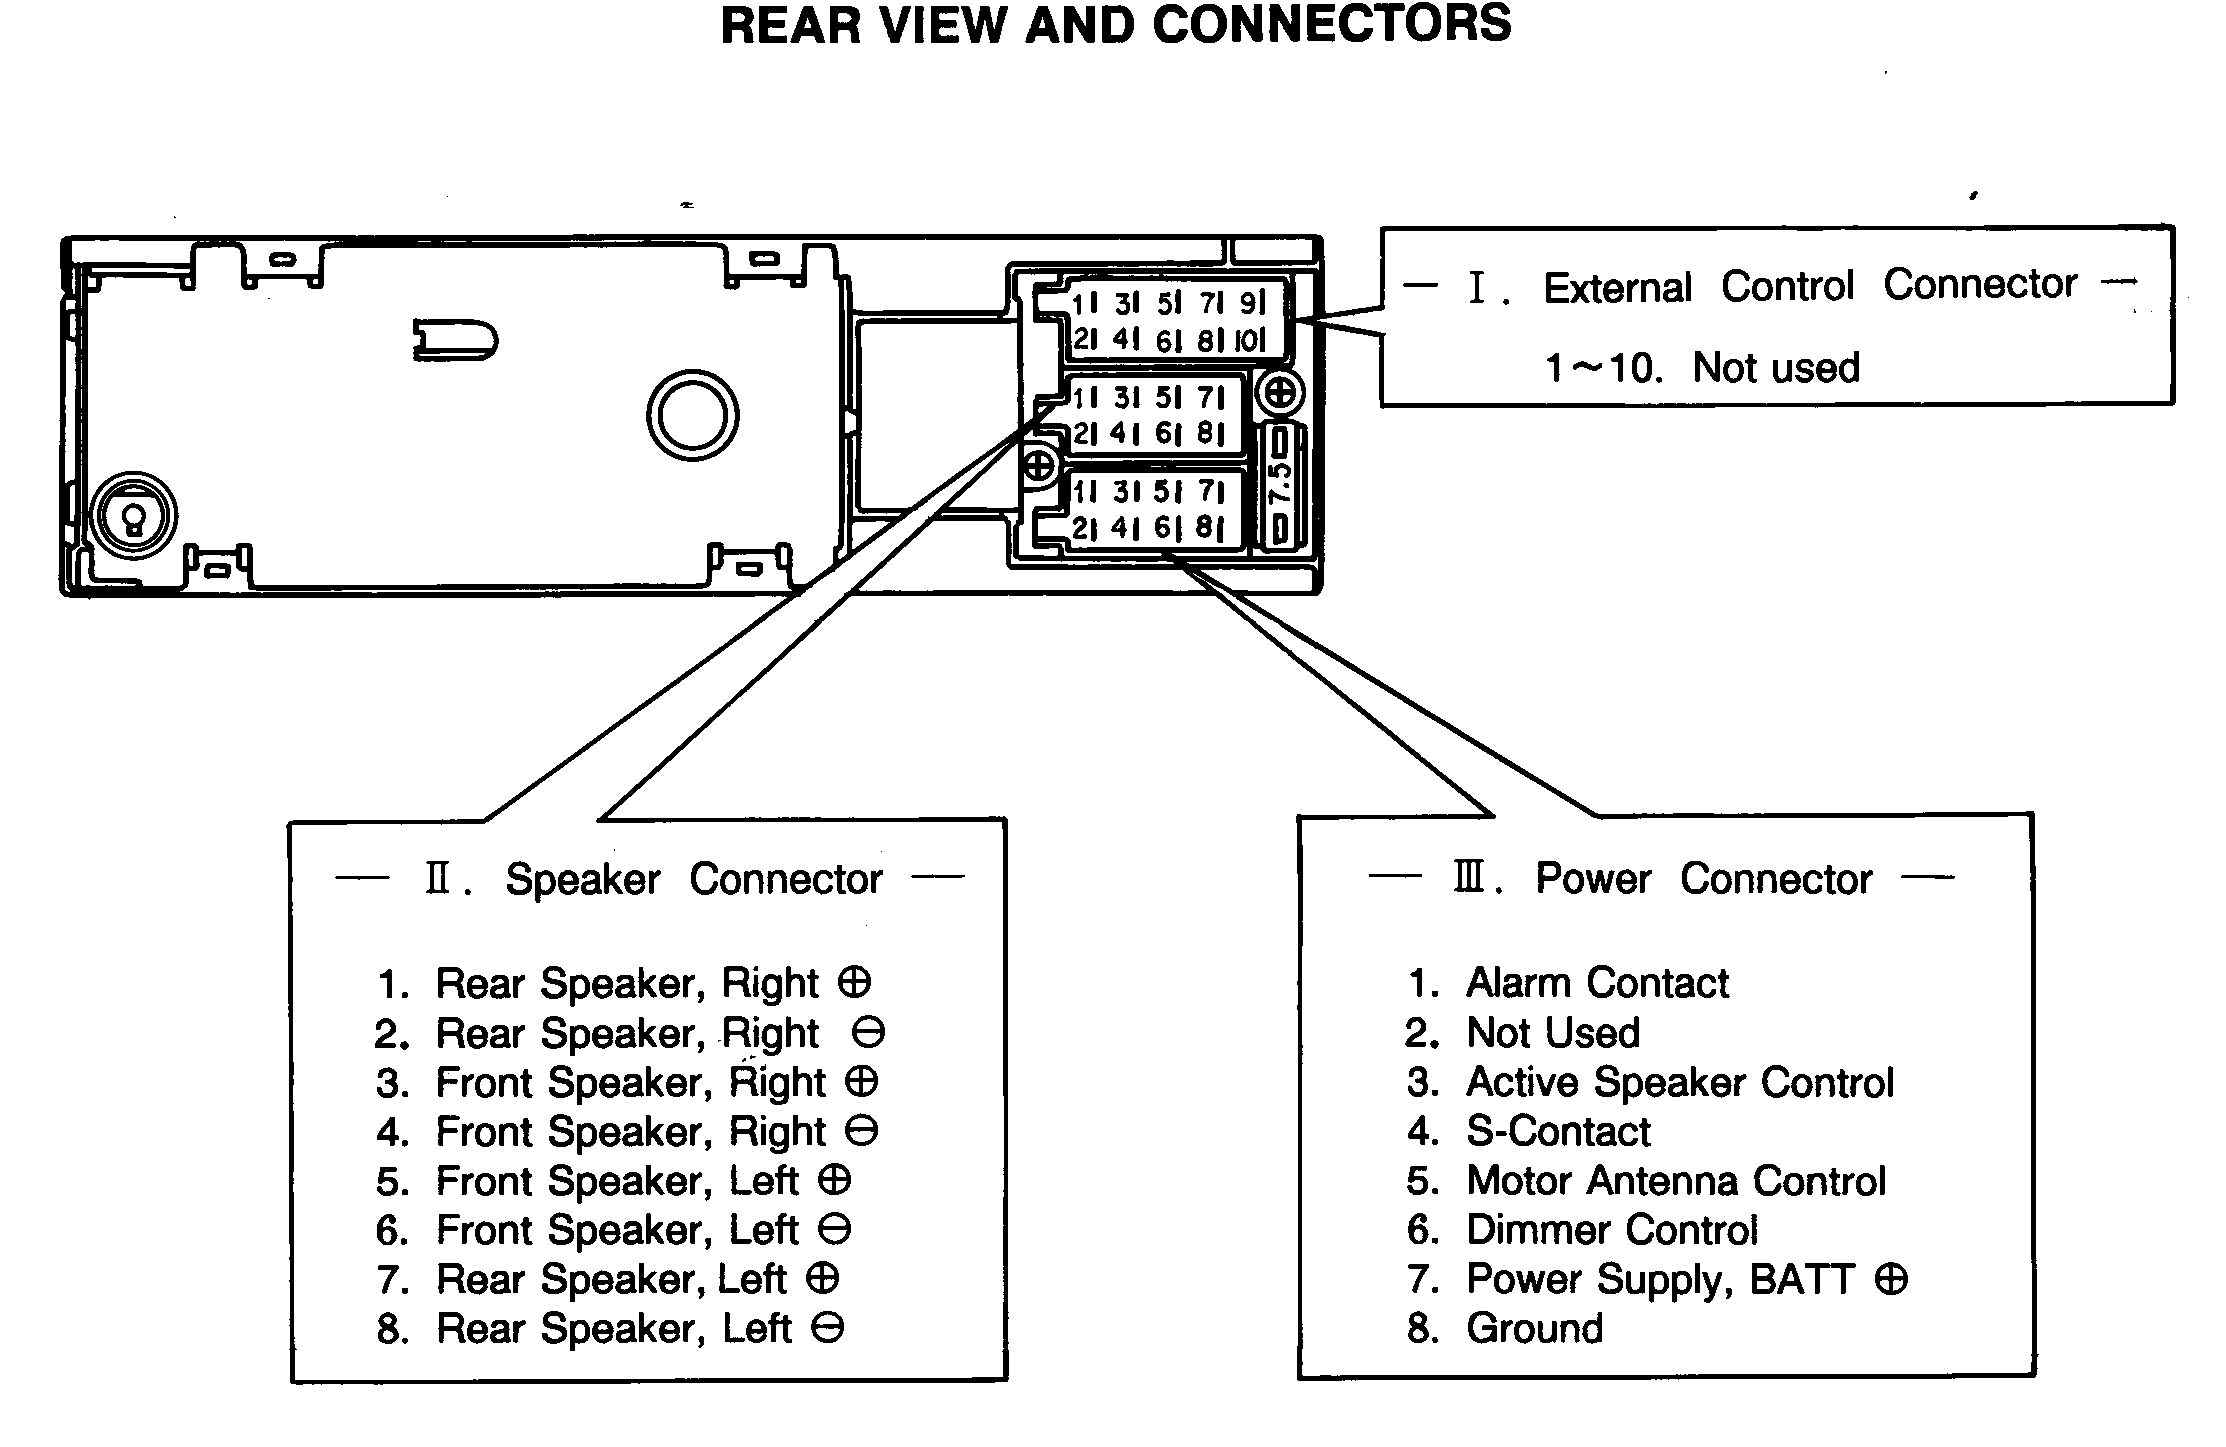 WireHarnessVW121401 car deck wiring diagram maytag neptune dryer wiring diagram \u2022 free  at cos-gaming.co